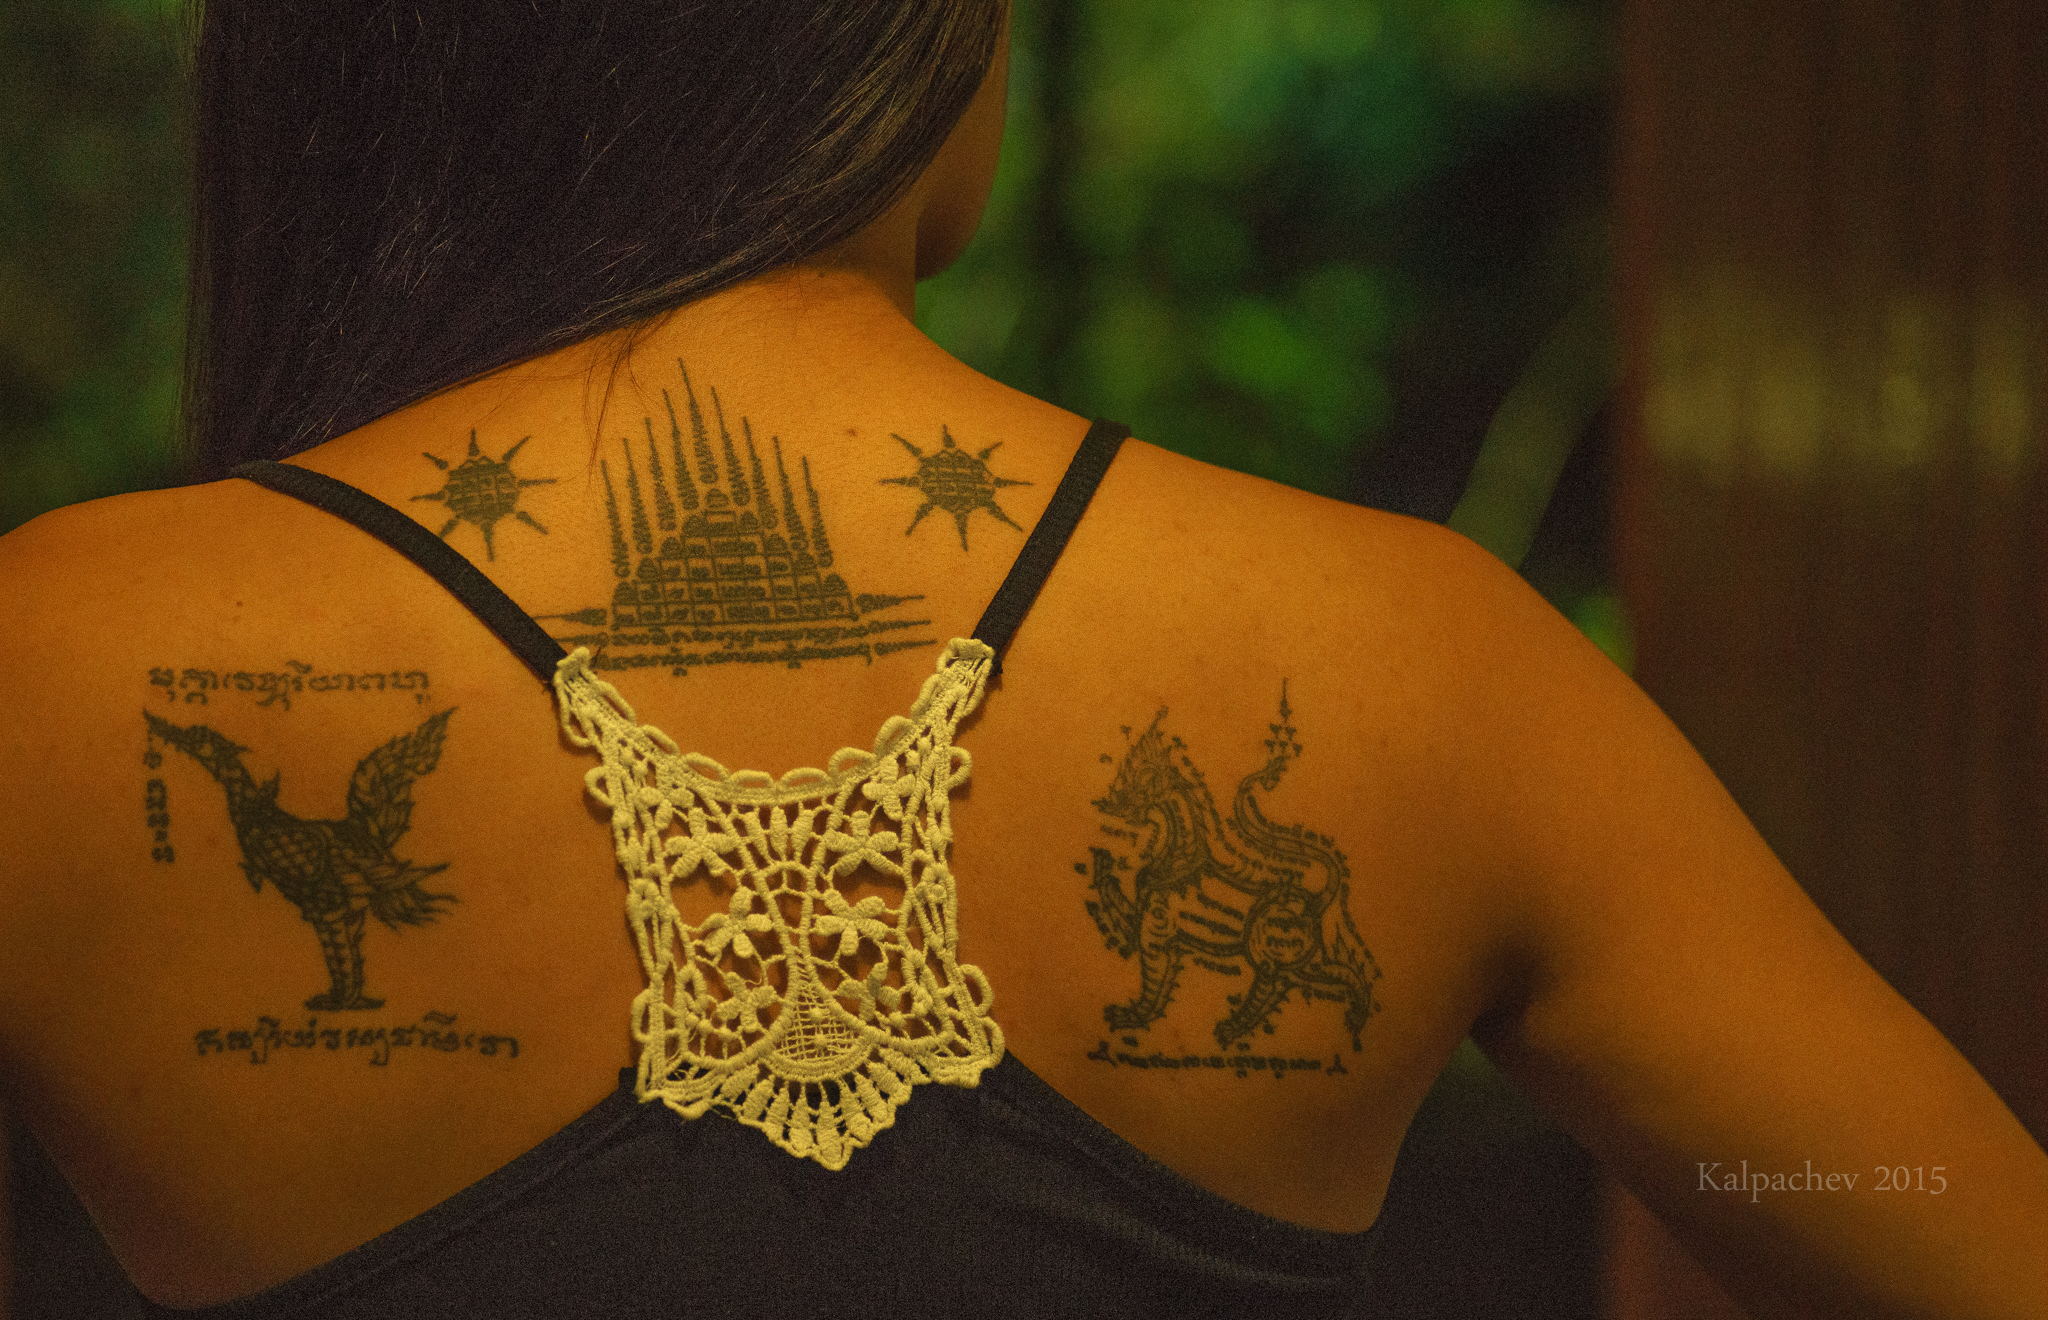 The Girl with the Tattoo